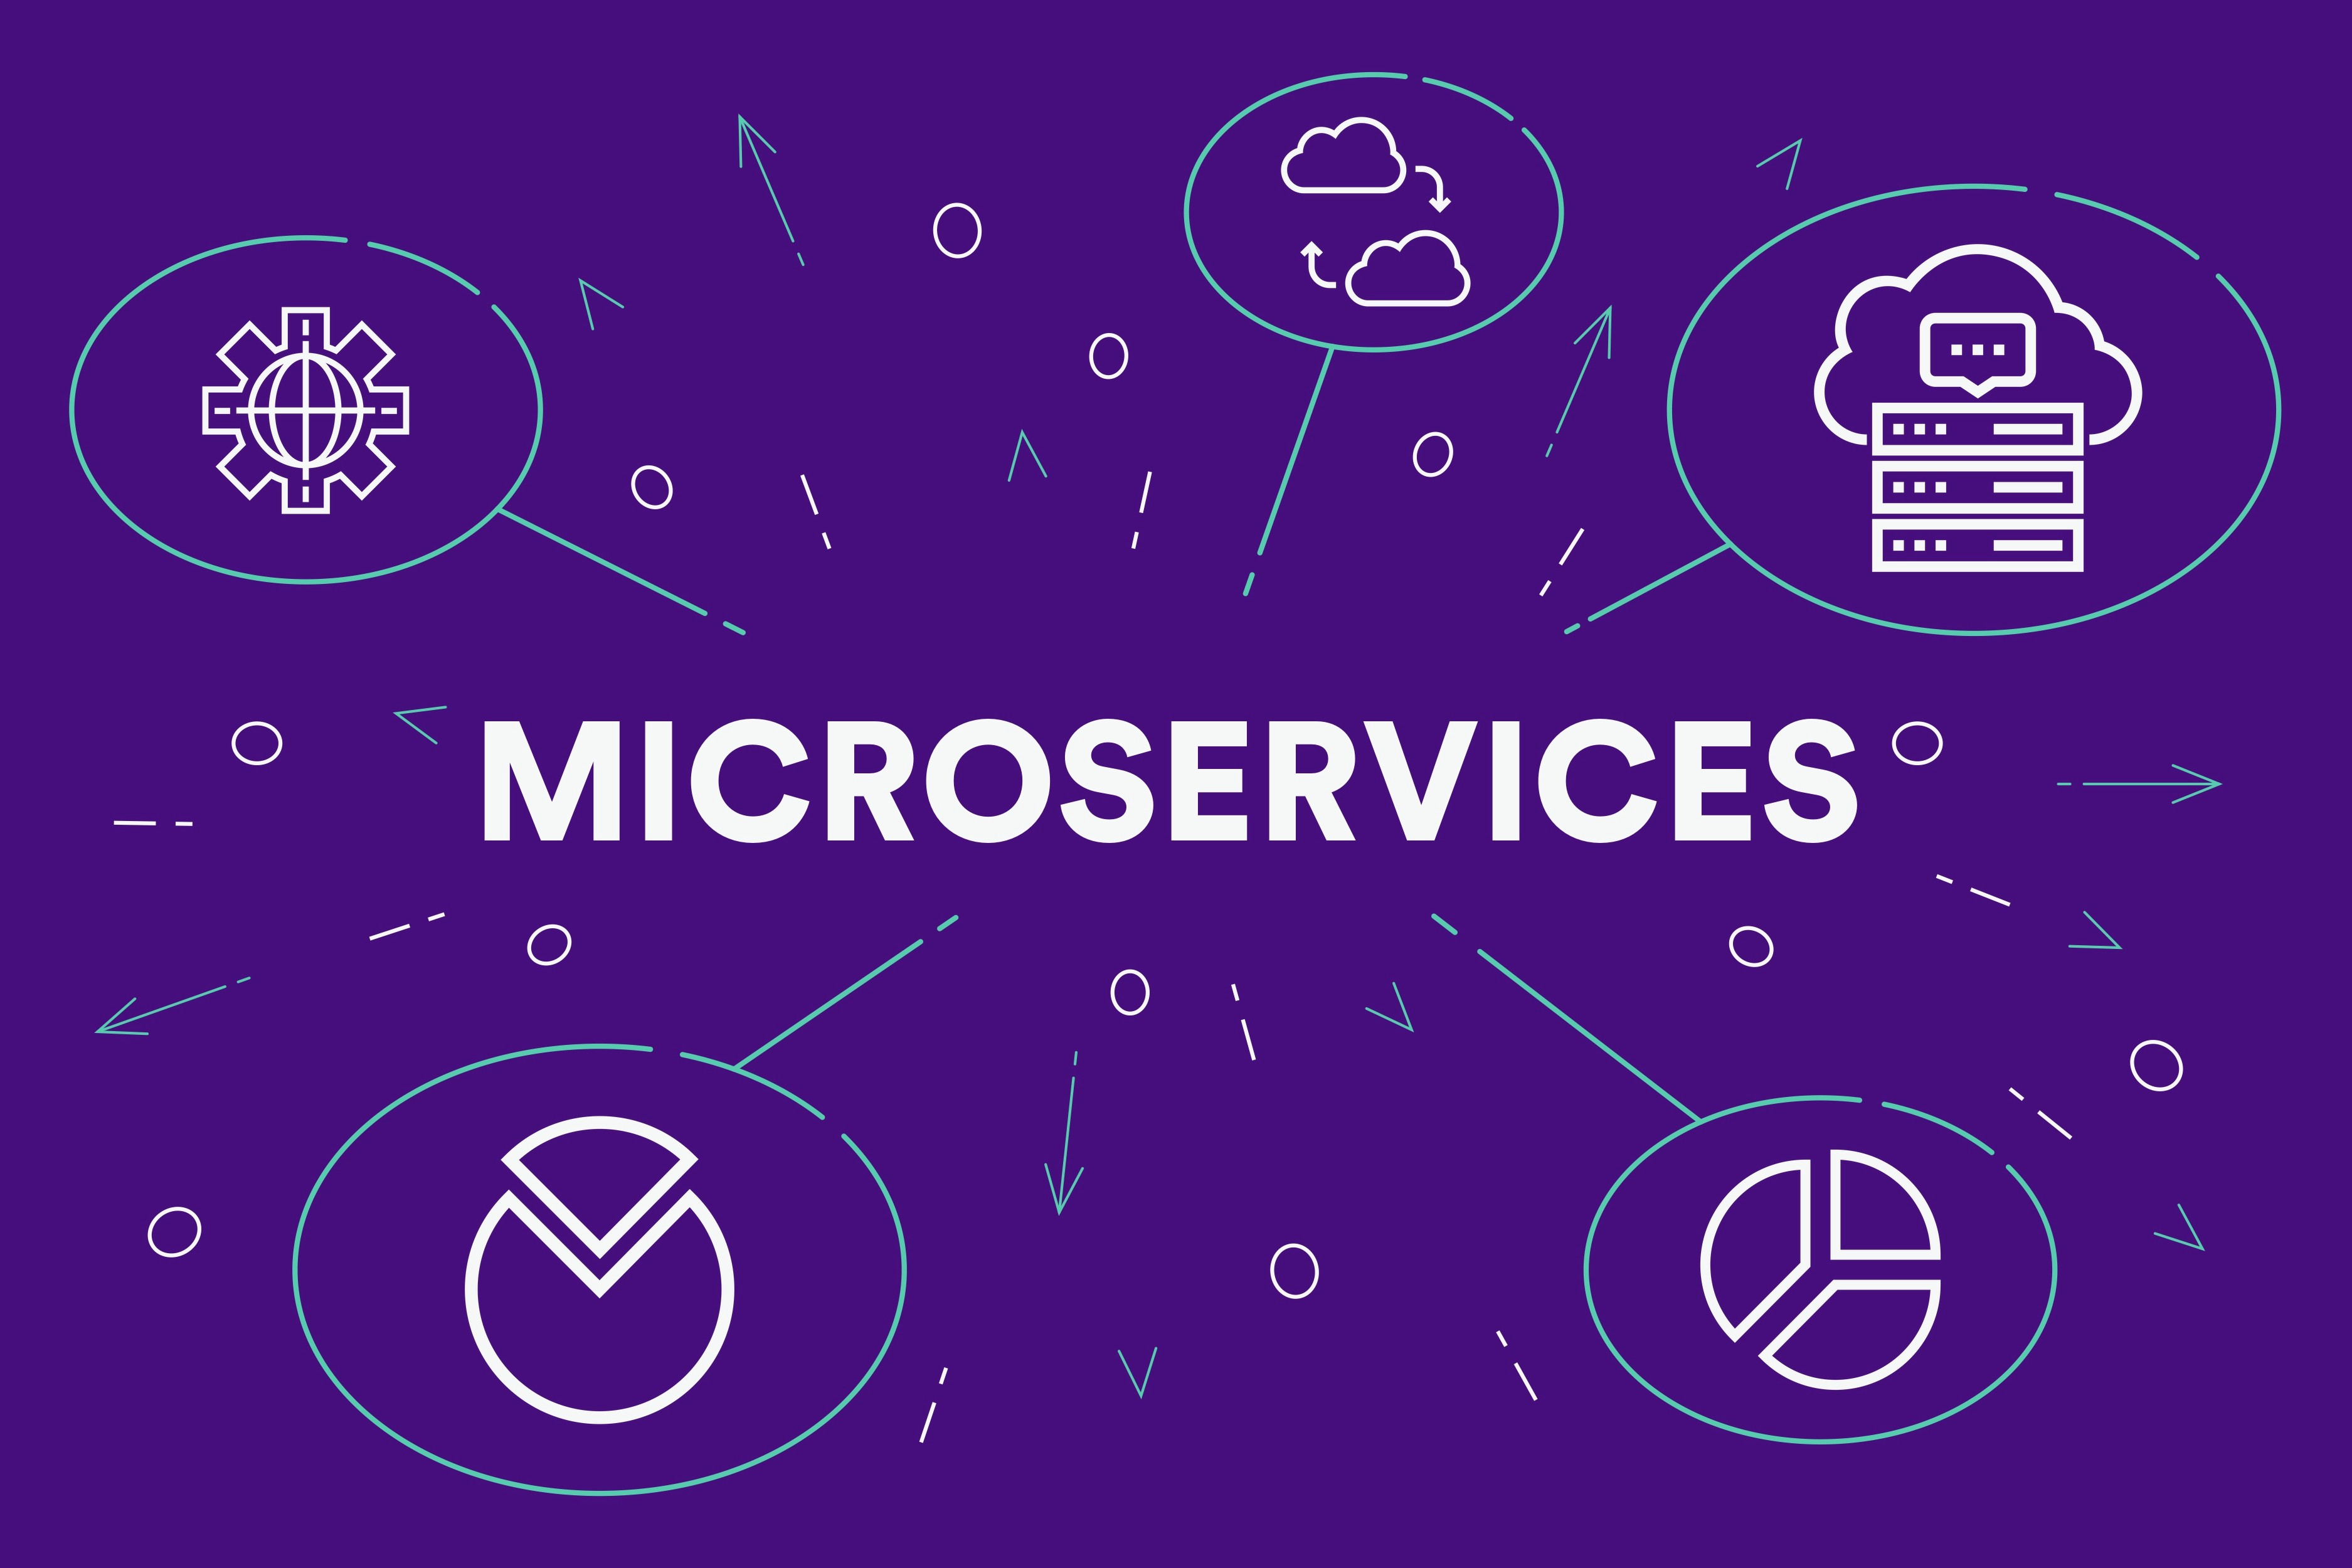 Microservices can be implemented by creating small teams that can take care of individual services.